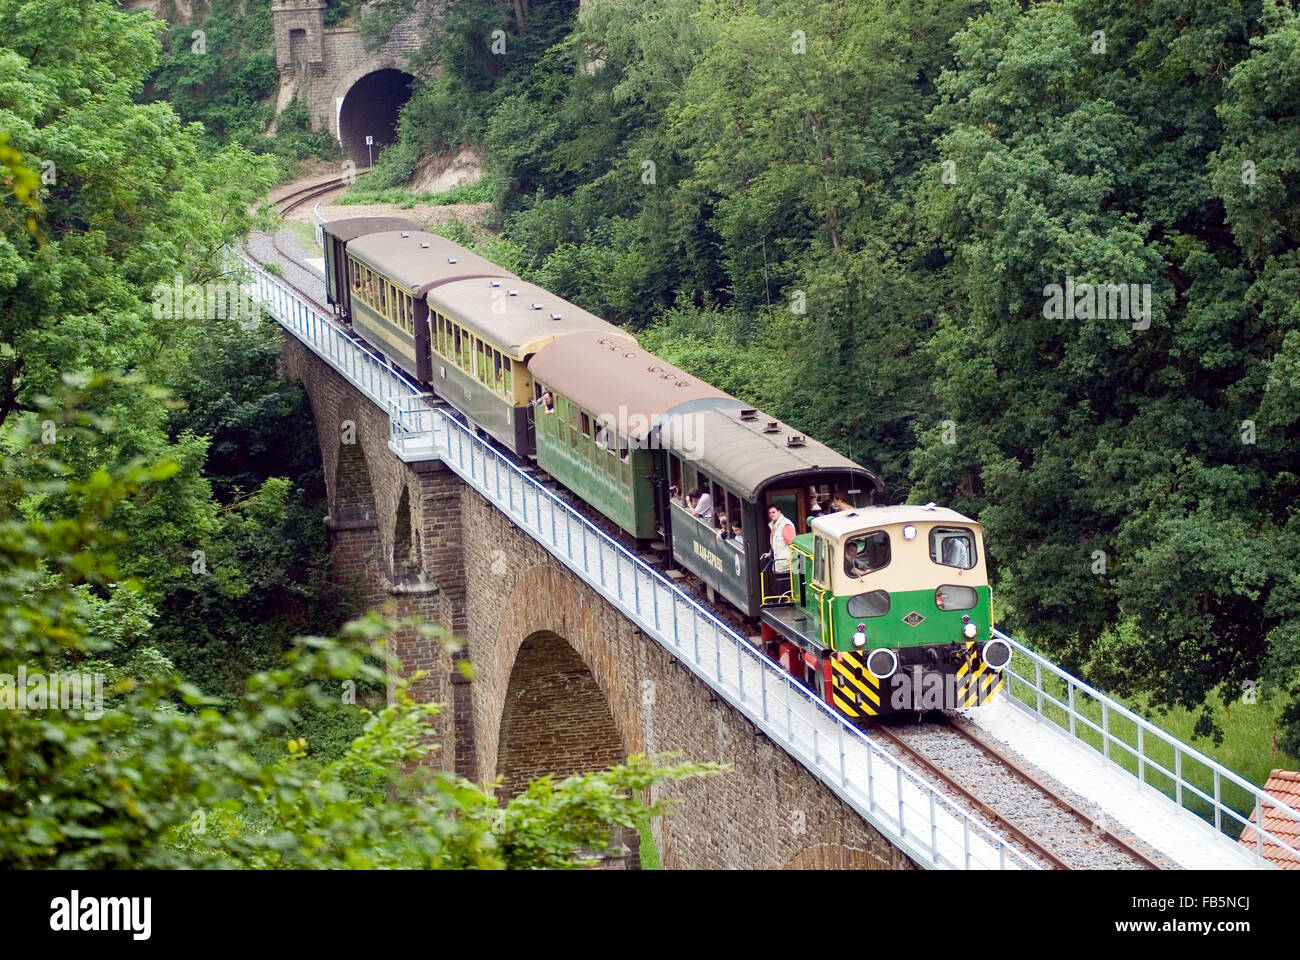 Steam Locomotive historic vulcan express in brohl valley rhineland-palatinate germany europe - Stock Image